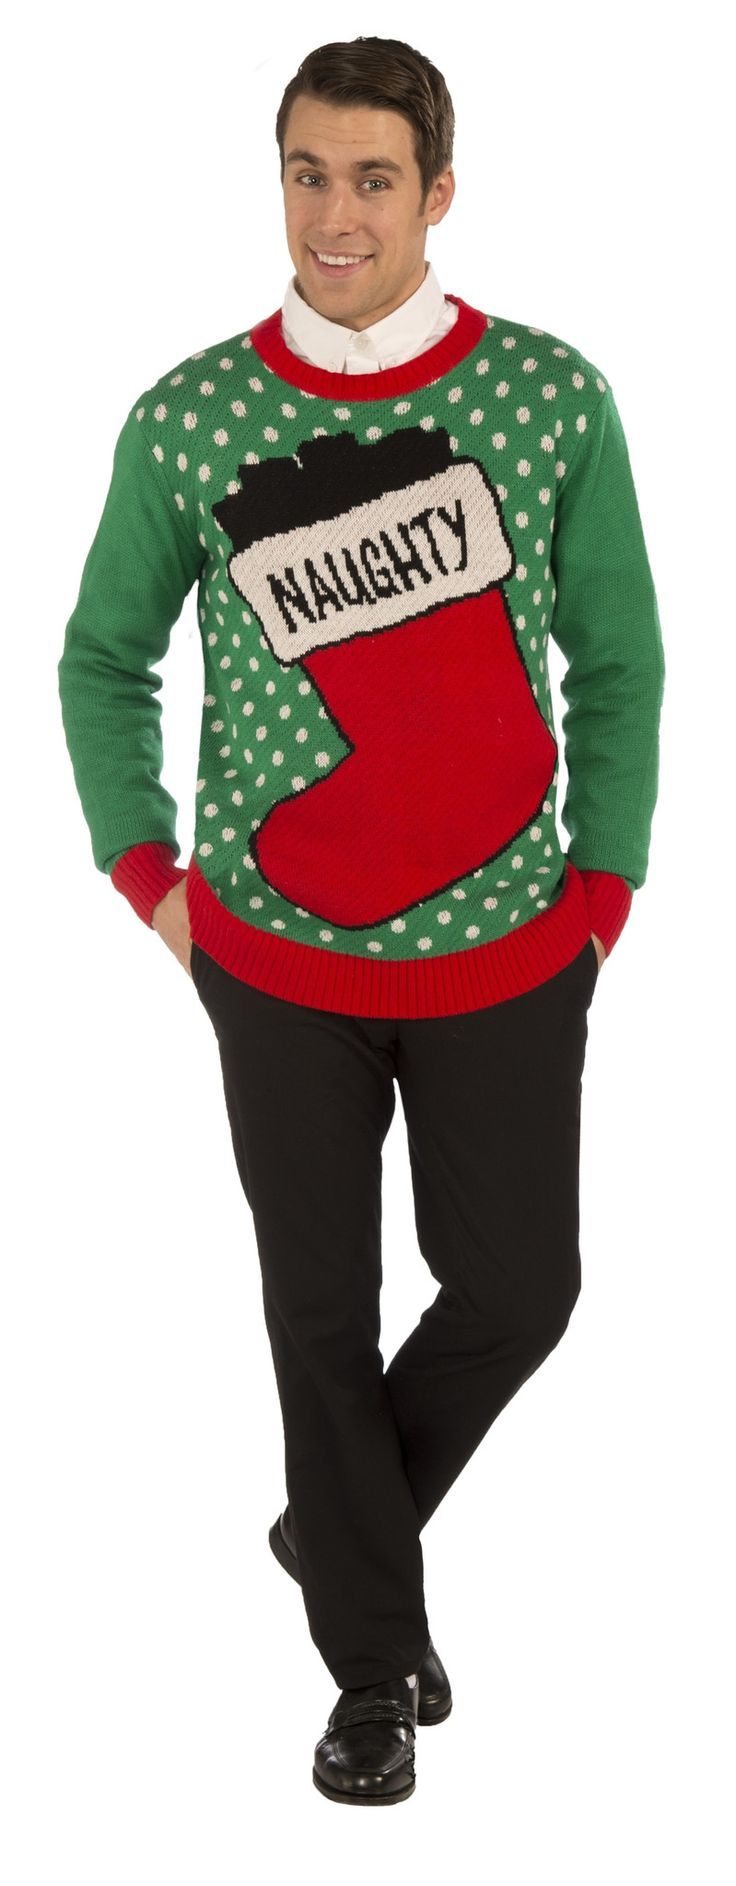 * Retro style Christmas sweater * 100% Polyester material * Hand wash * Great for holiday parties, family gatherings and more! * Brand new in manufacturer packaging